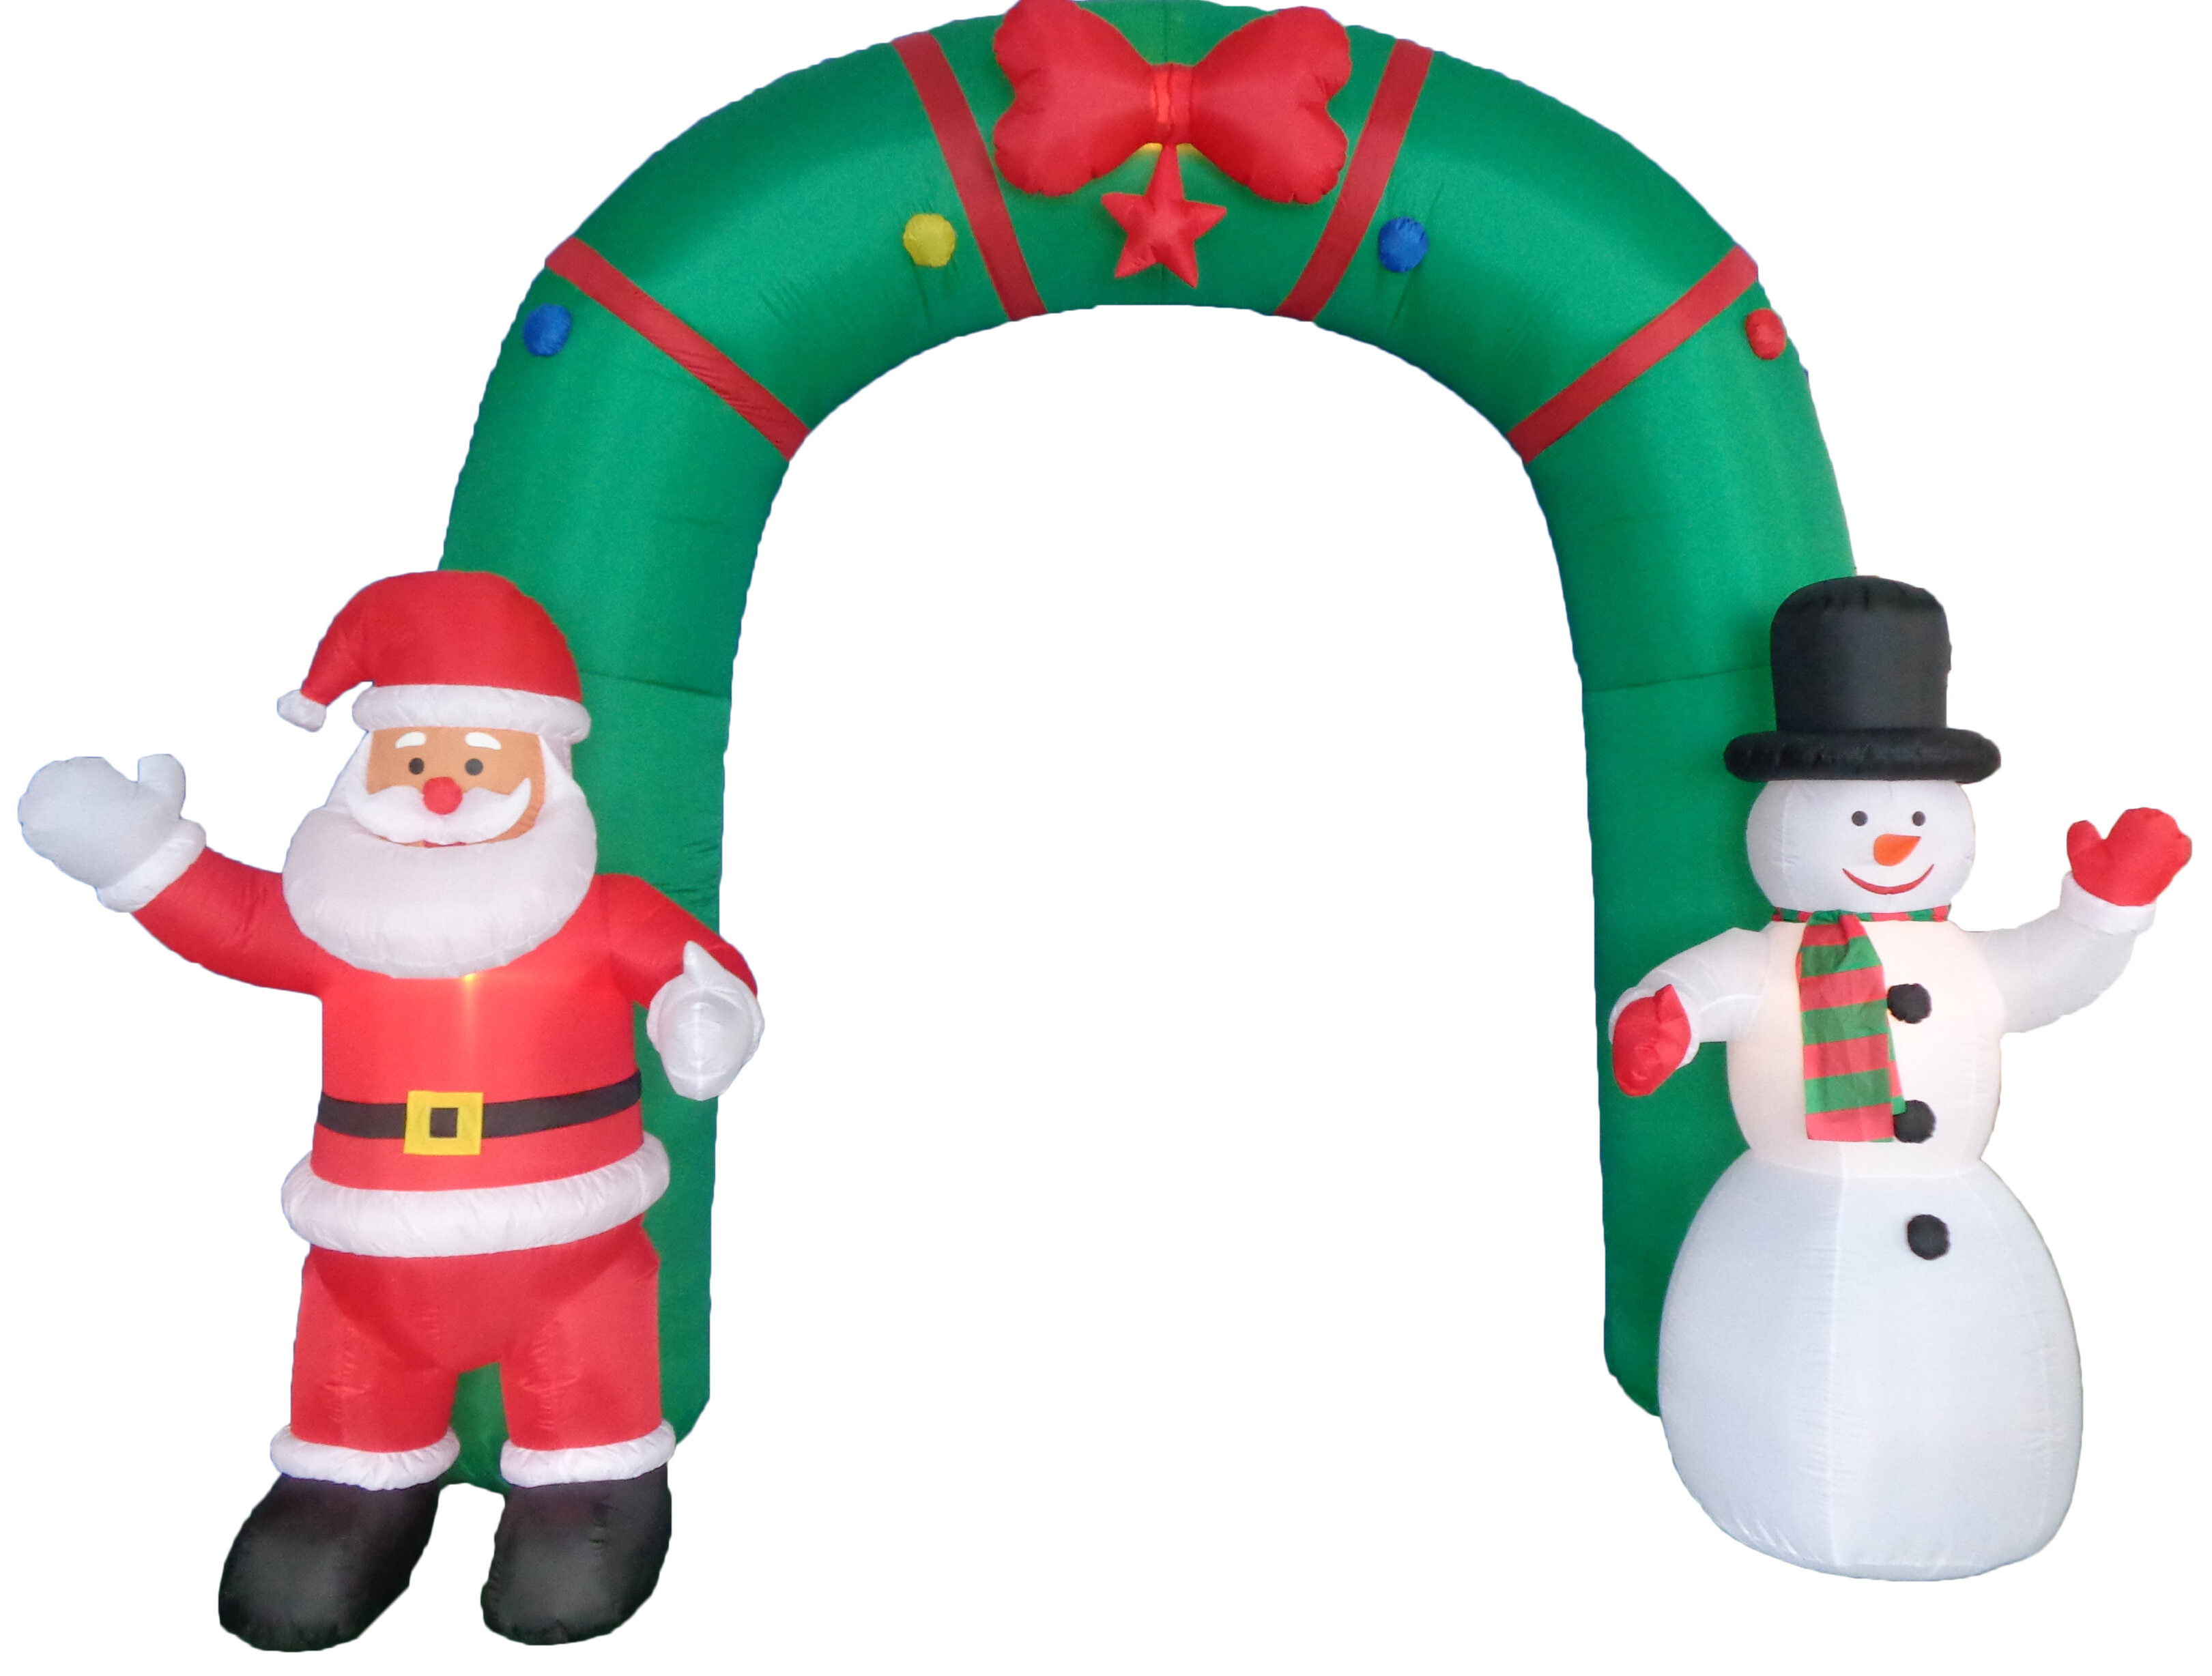 BZB Goods Christmas Inflatable Archway Indoor/Outdoor Decoration ...